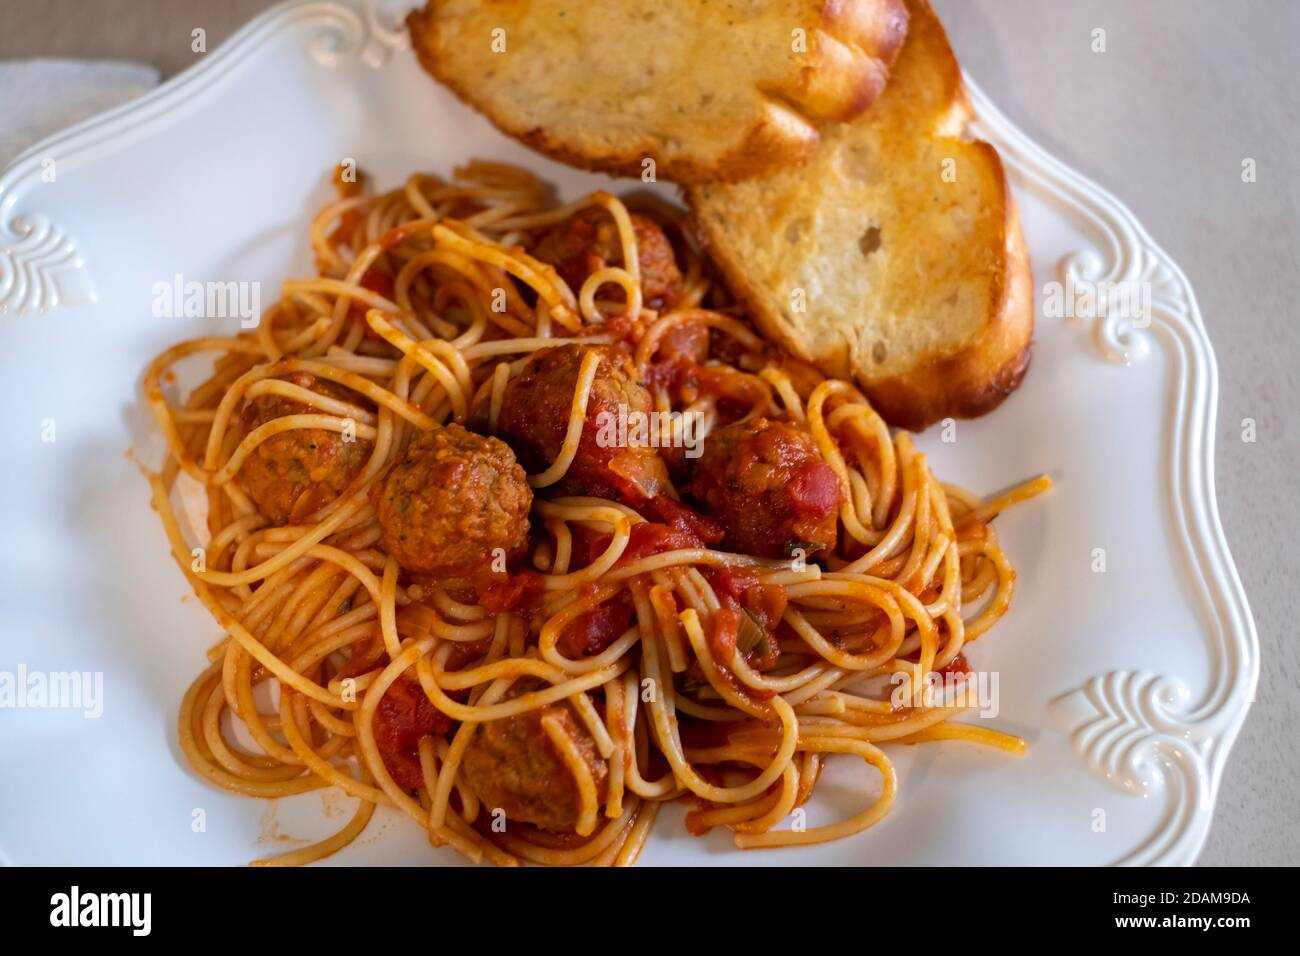 cooked-spaghetti-and-beef-meatballs-on-a